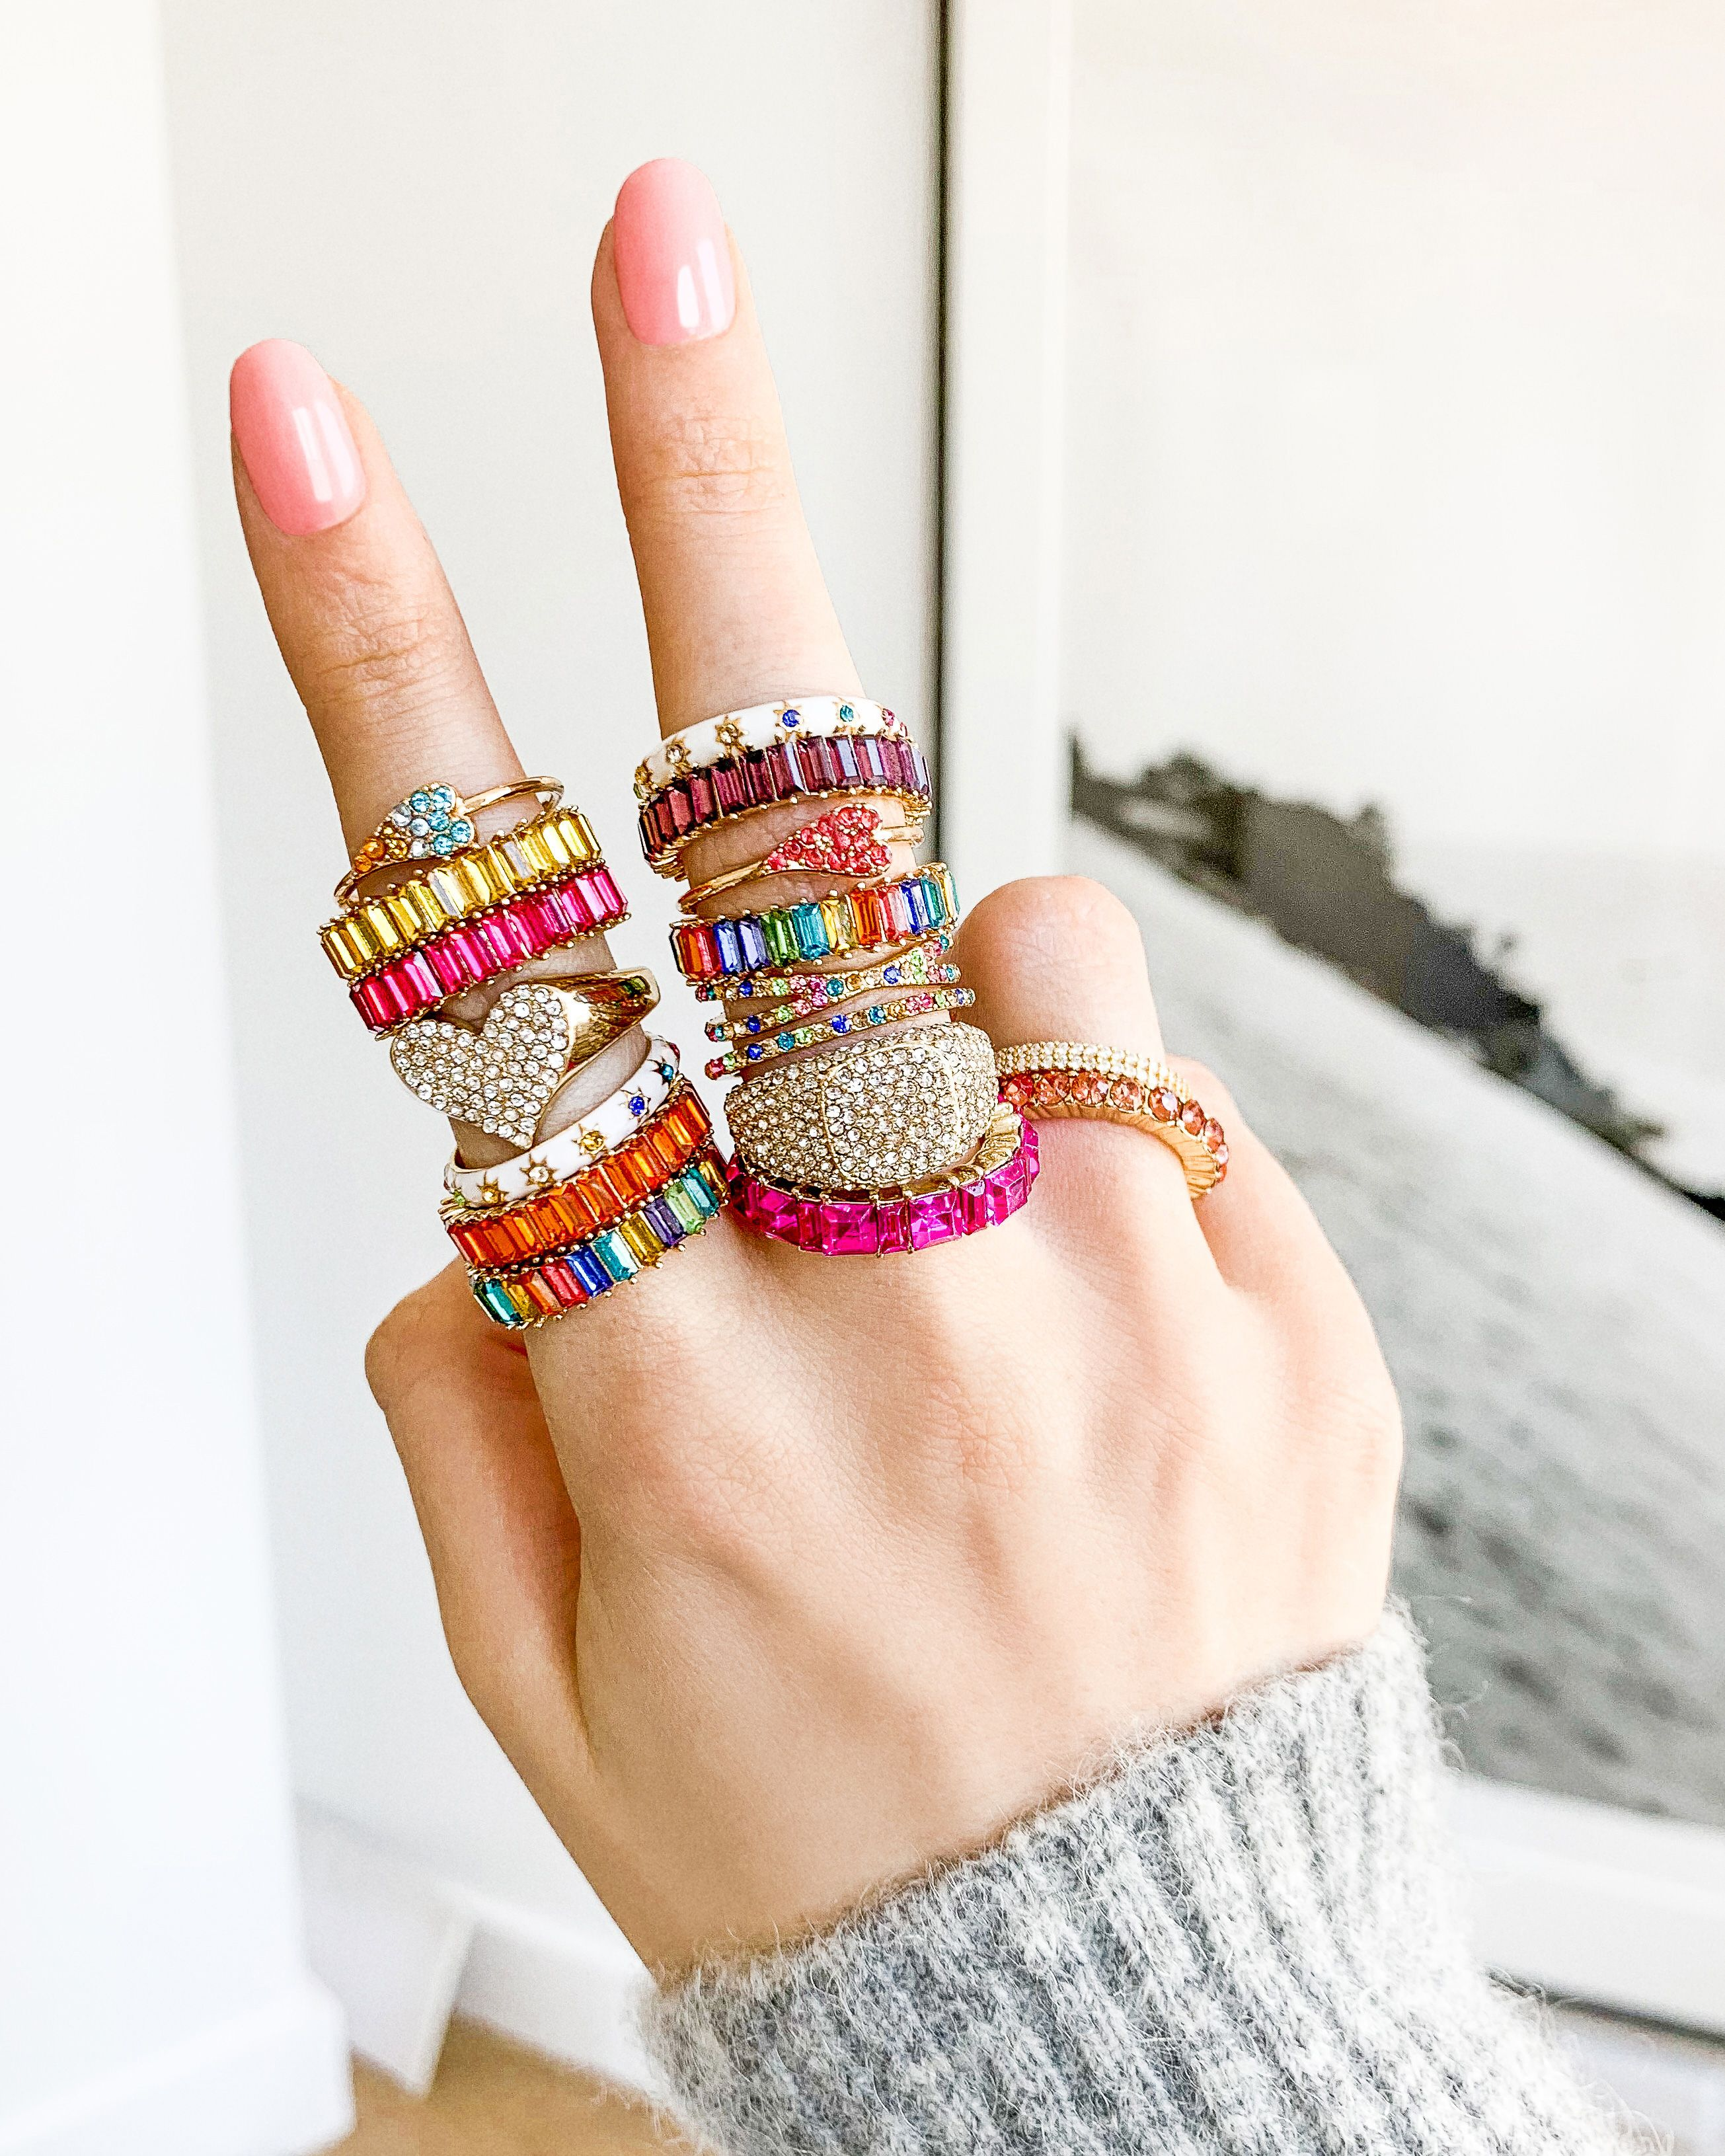 Rainbow rings. Gem rings. Create your own stacked look